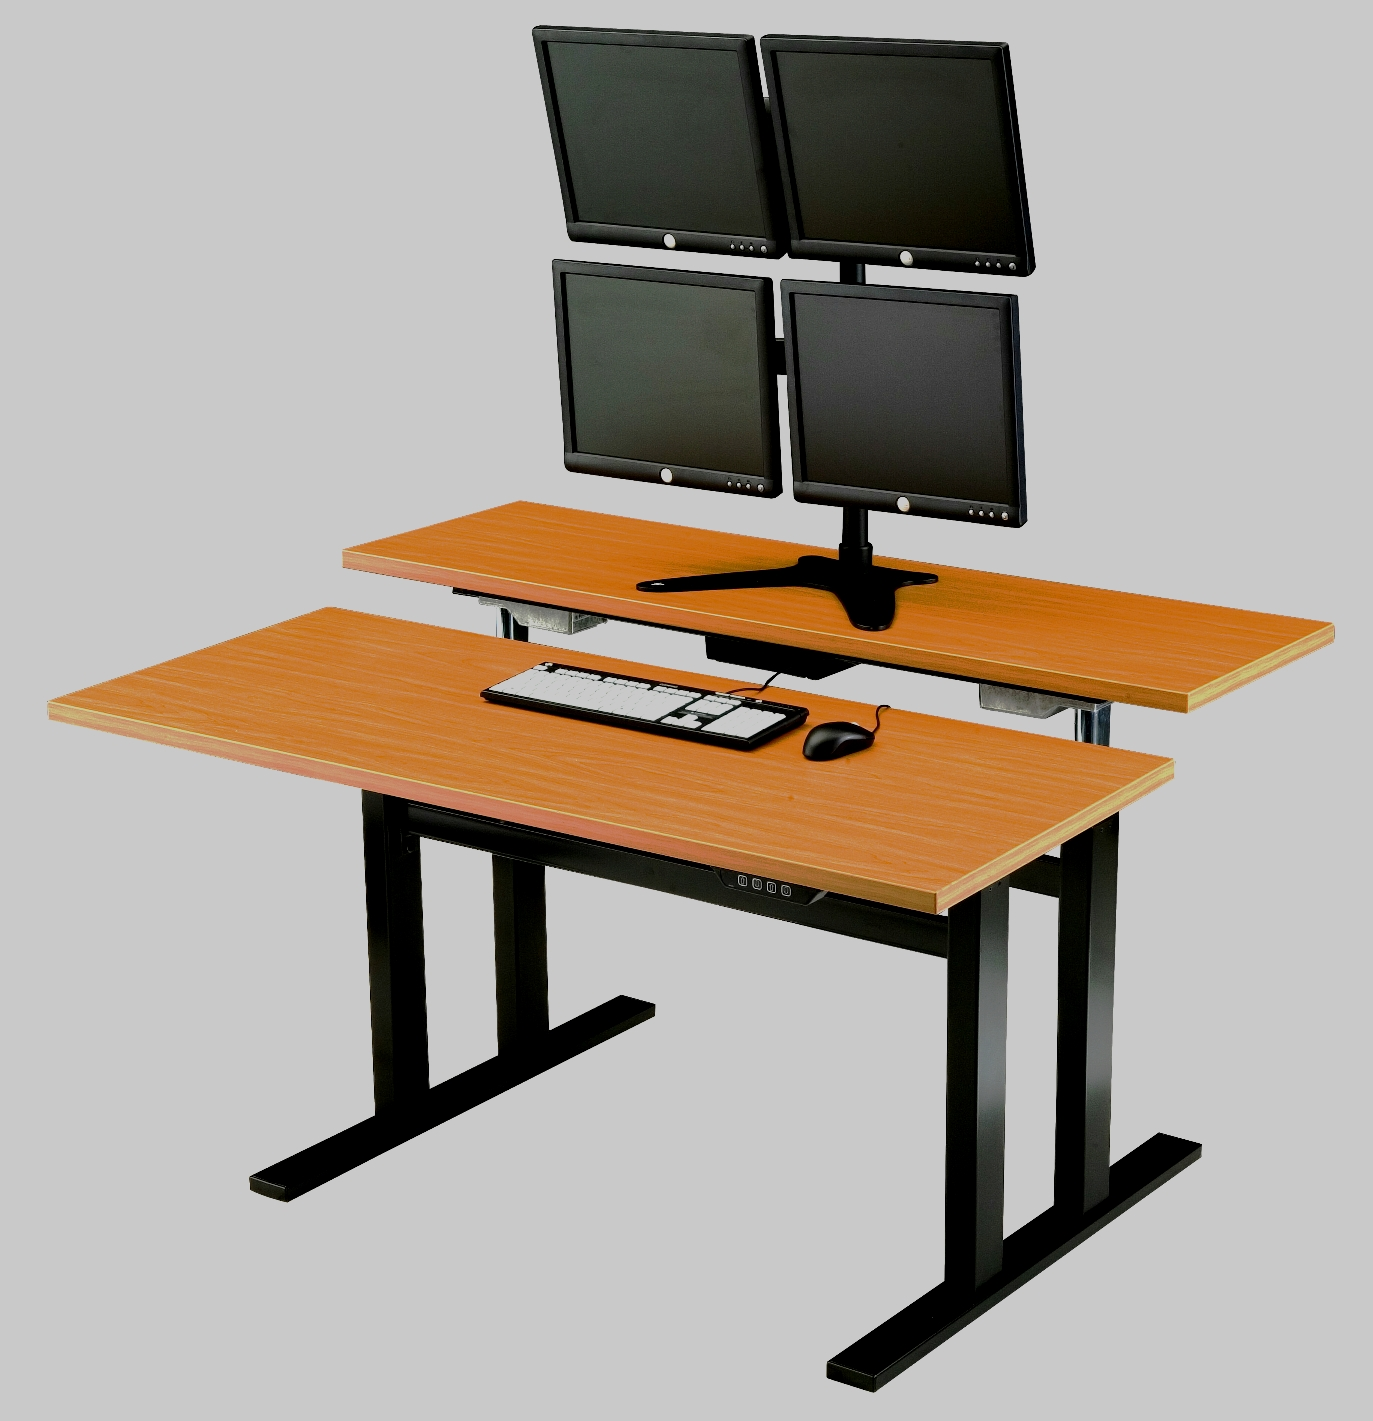 Adjustable Adjustable Standing Desk